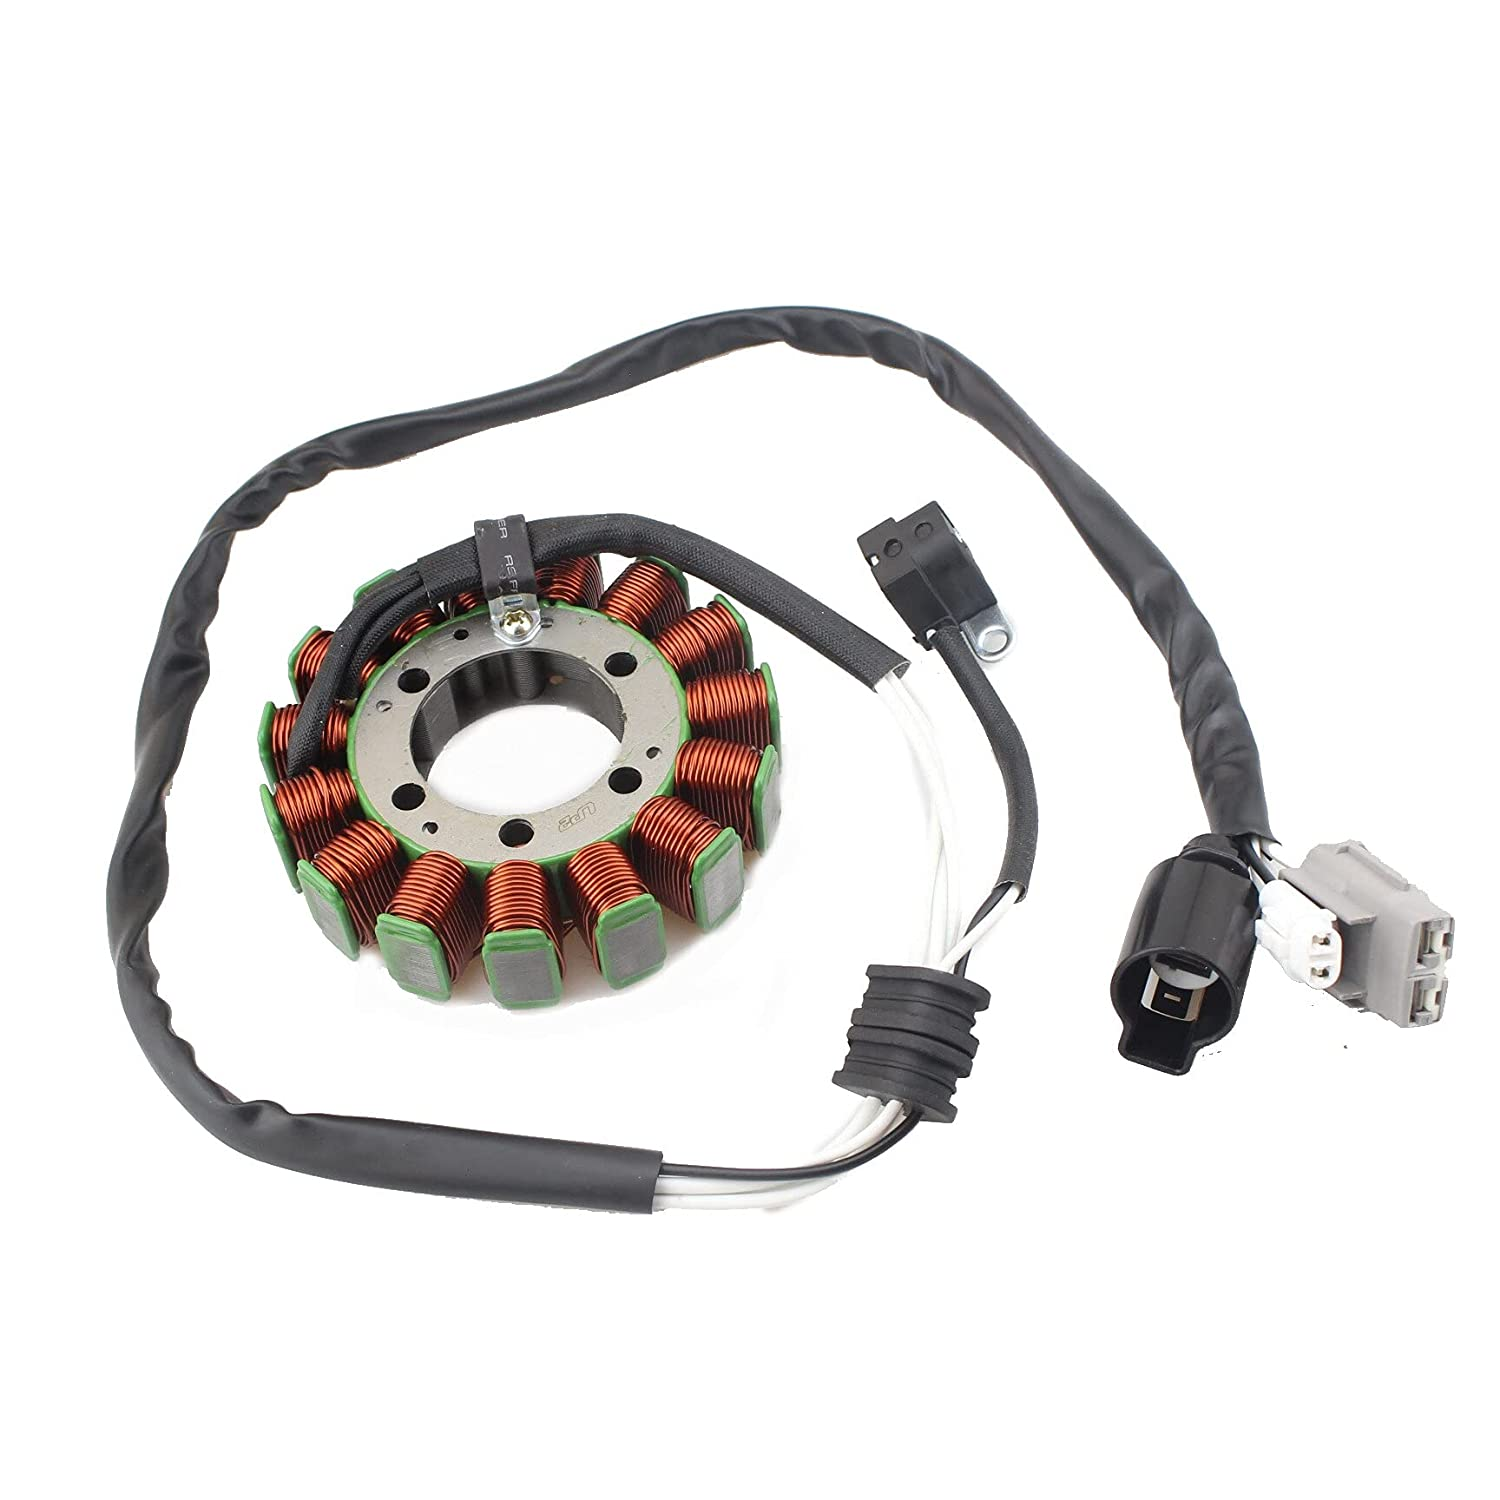 Replacement Part for 5B4-81410-00-00 Stator Yamaha Charlotte Mall Opening large release sale Coil EPS